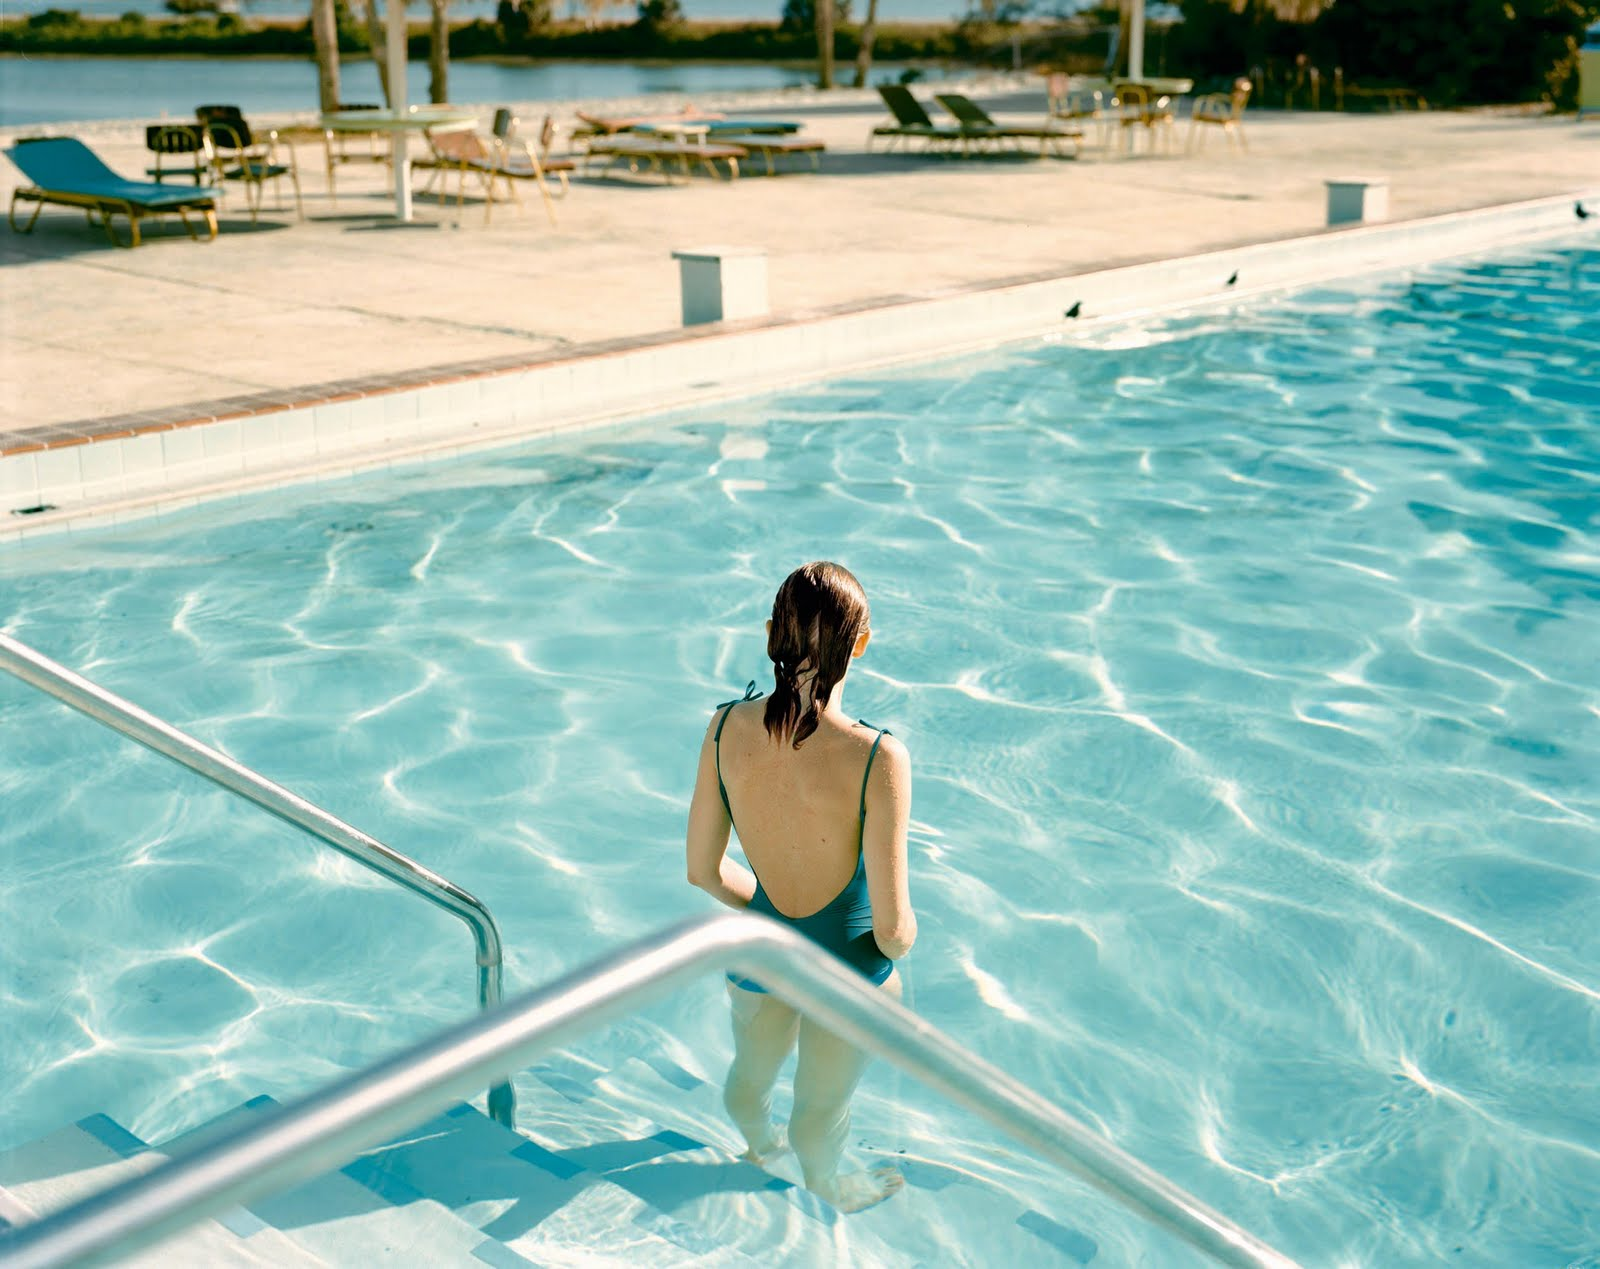 Fig 17. Stephen Shore, Ginger Shore, Tampa, Florida 1977. C-Type Print